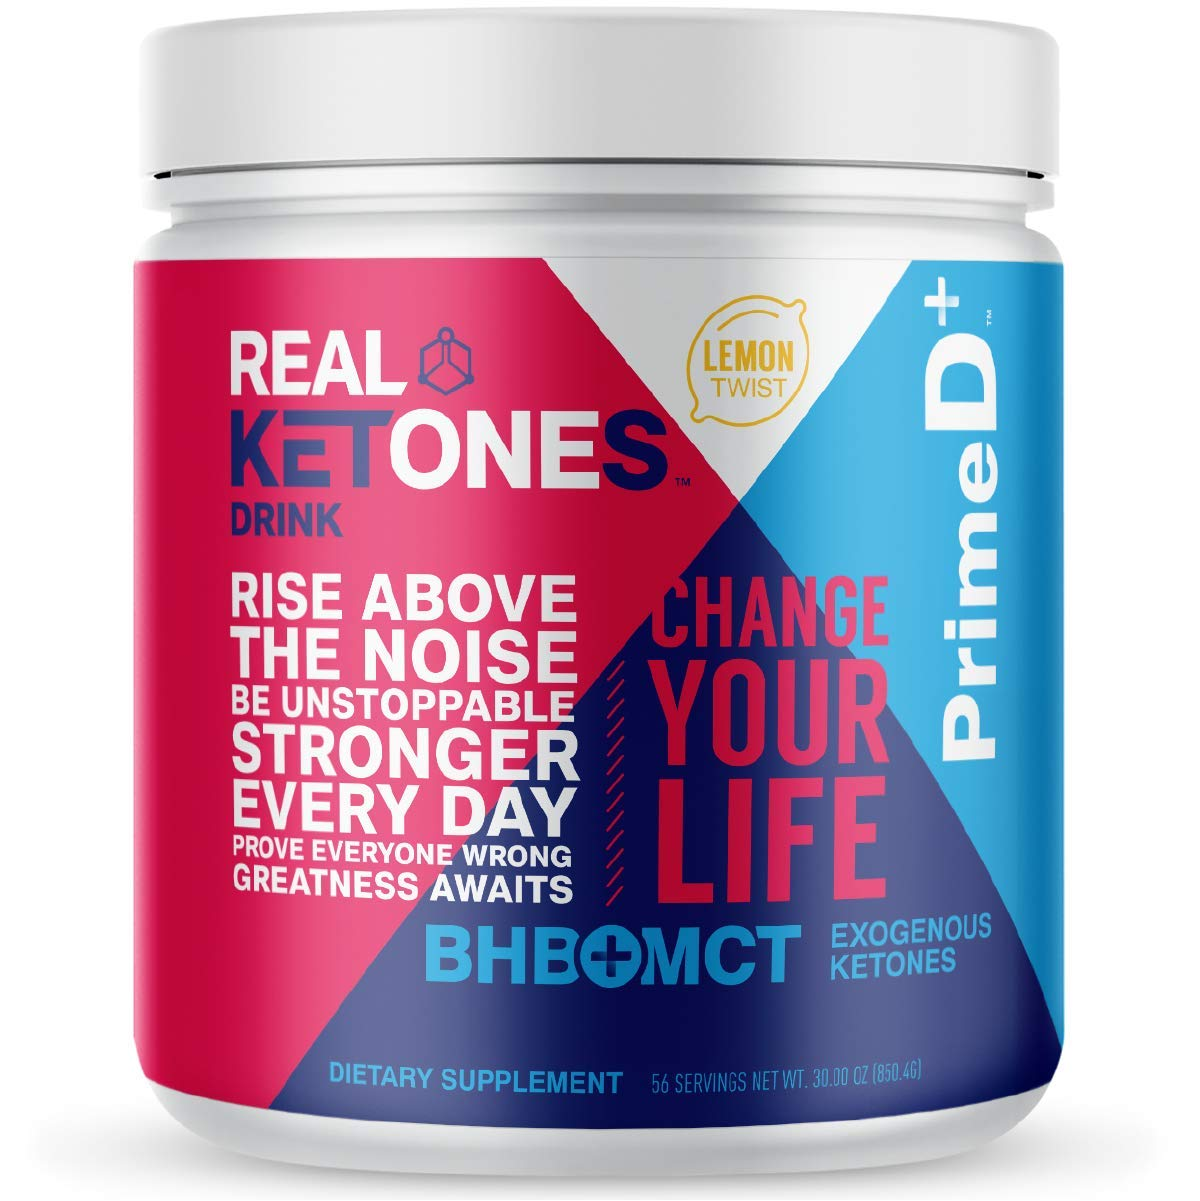 Real Ketones Prime D+ BHB (Beta-Hydroxybuterate) and MCT Exogenous Ketone Powder Supports Ketogenic Diet, Energy Boost, Mental Clarity (Lemon Twist) (56 Serving)